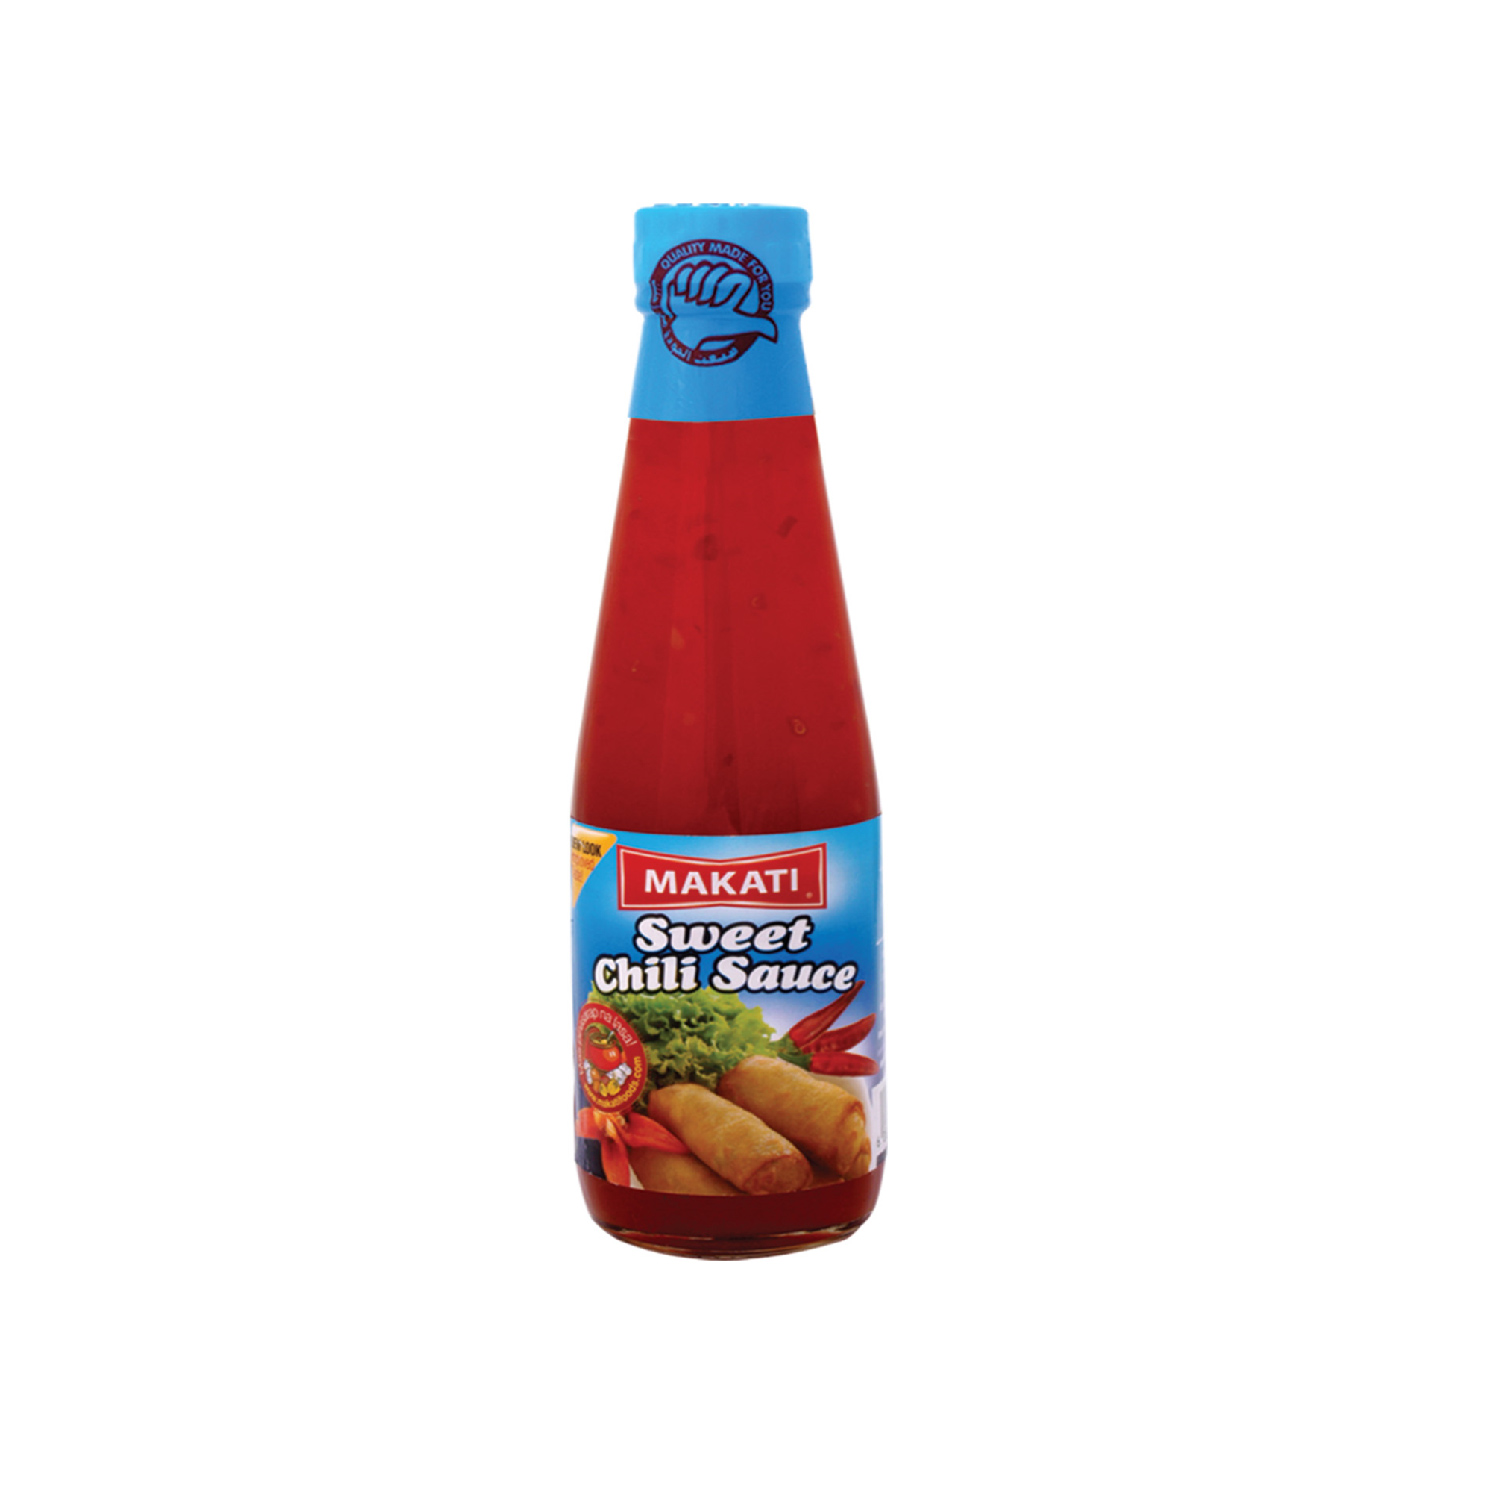 Makati Sweet Chili Sauce 700ml Upc 6281063634133 Laptop Repair Hp